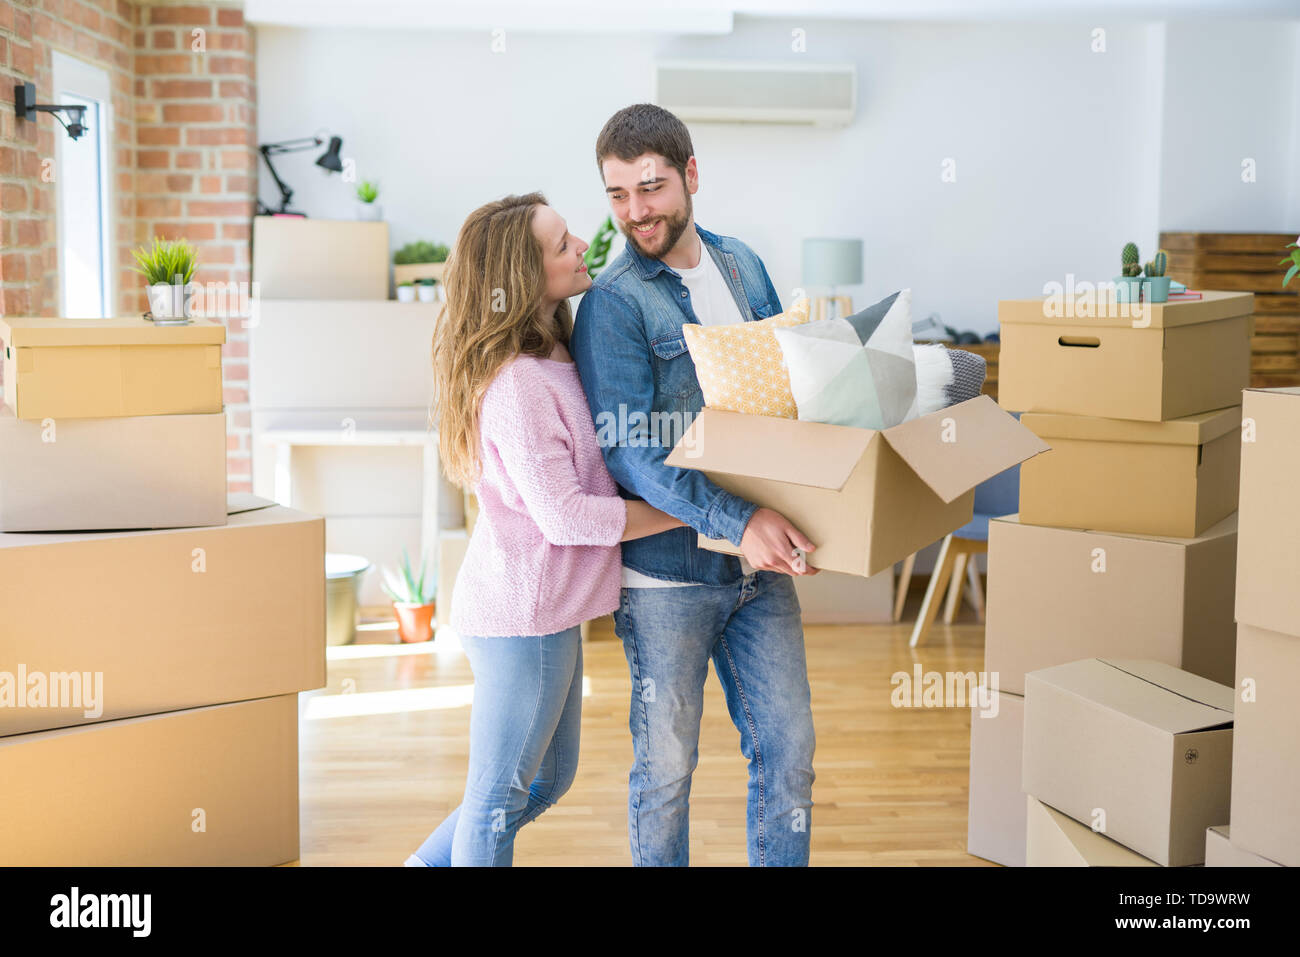 Young beautiful couple very happy together holding cardboard boxes moving to a new home - Stock Image